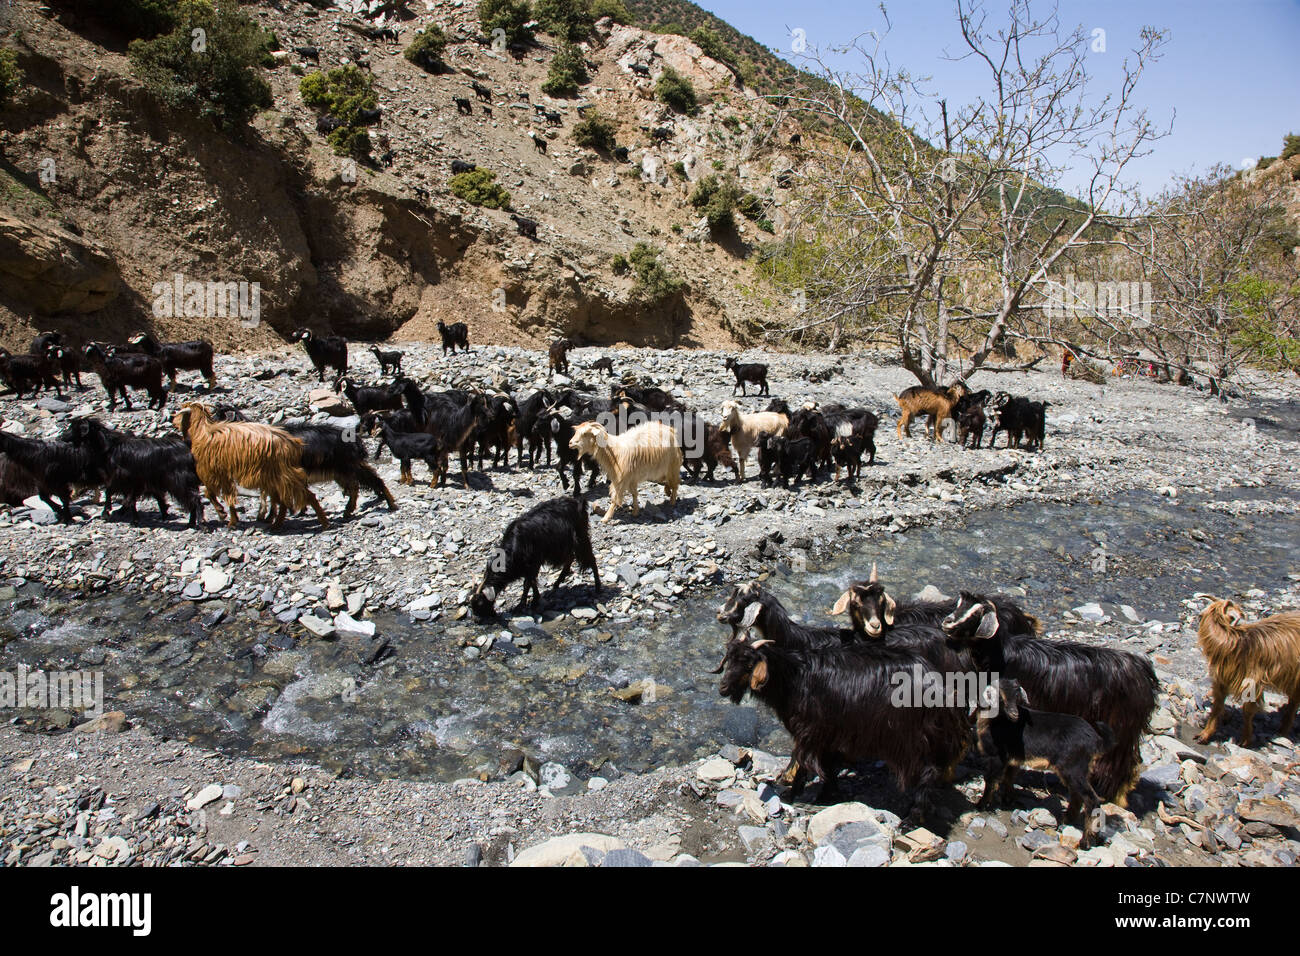 Herd of goats in the river valley - Stock Image